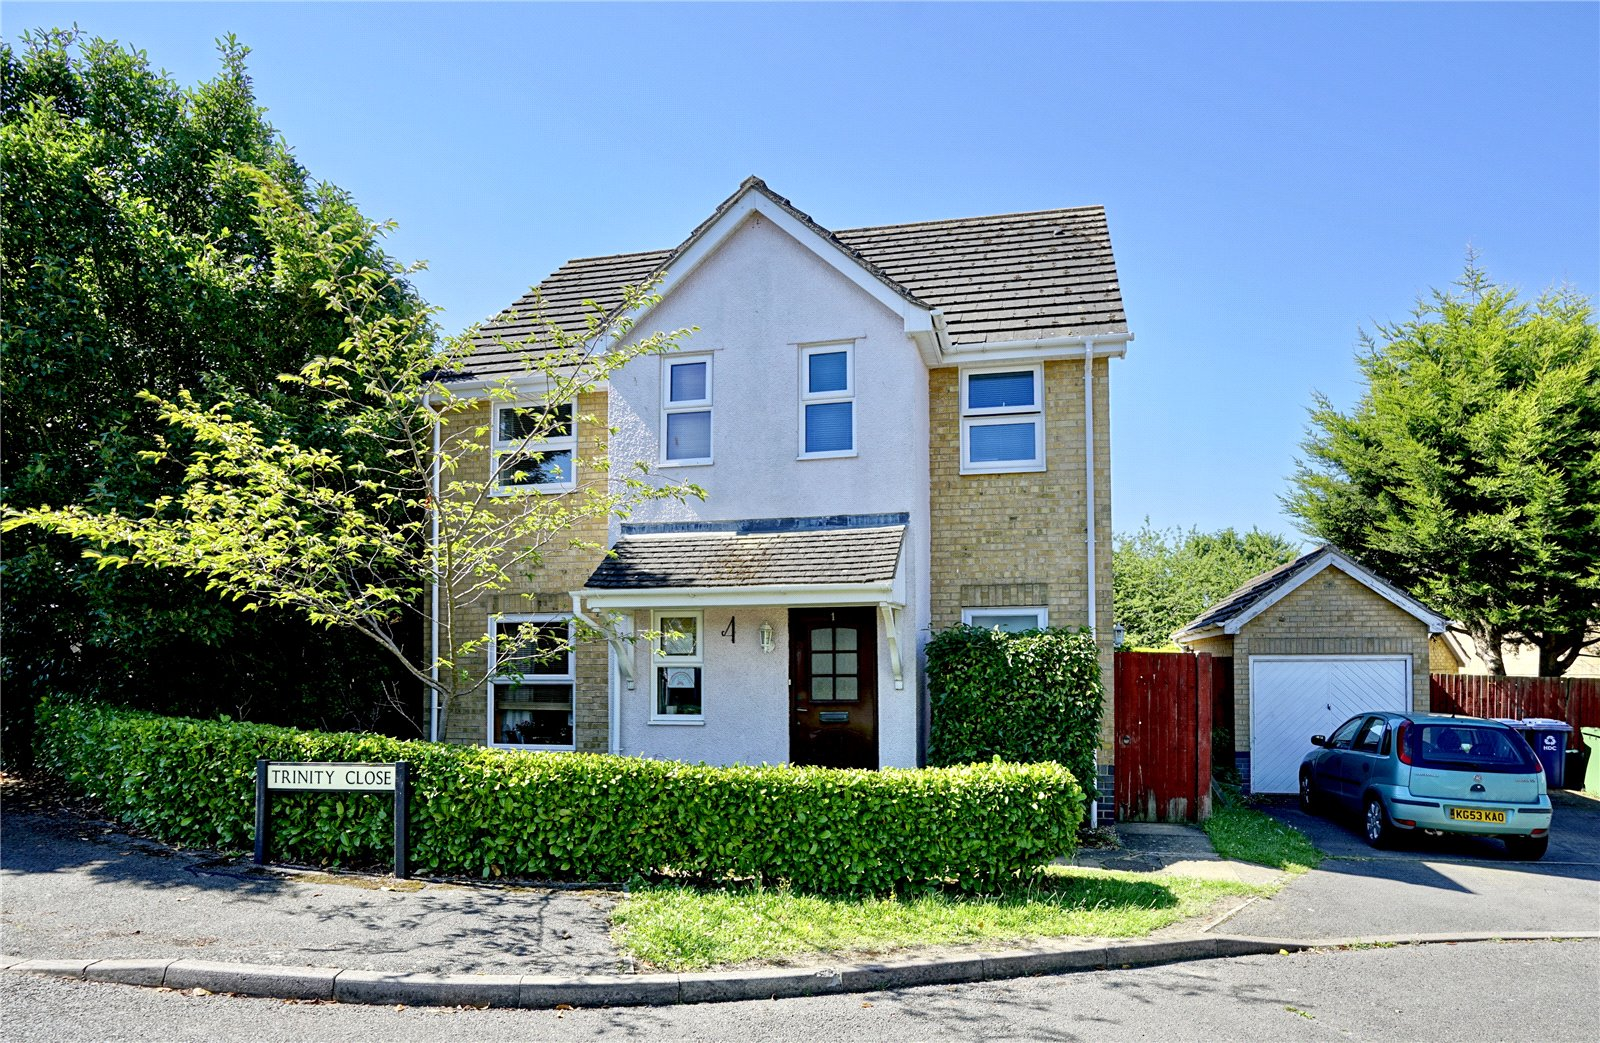 4 bed house for sale in Great Paxton, Trinity Close, PE19 6YL 0